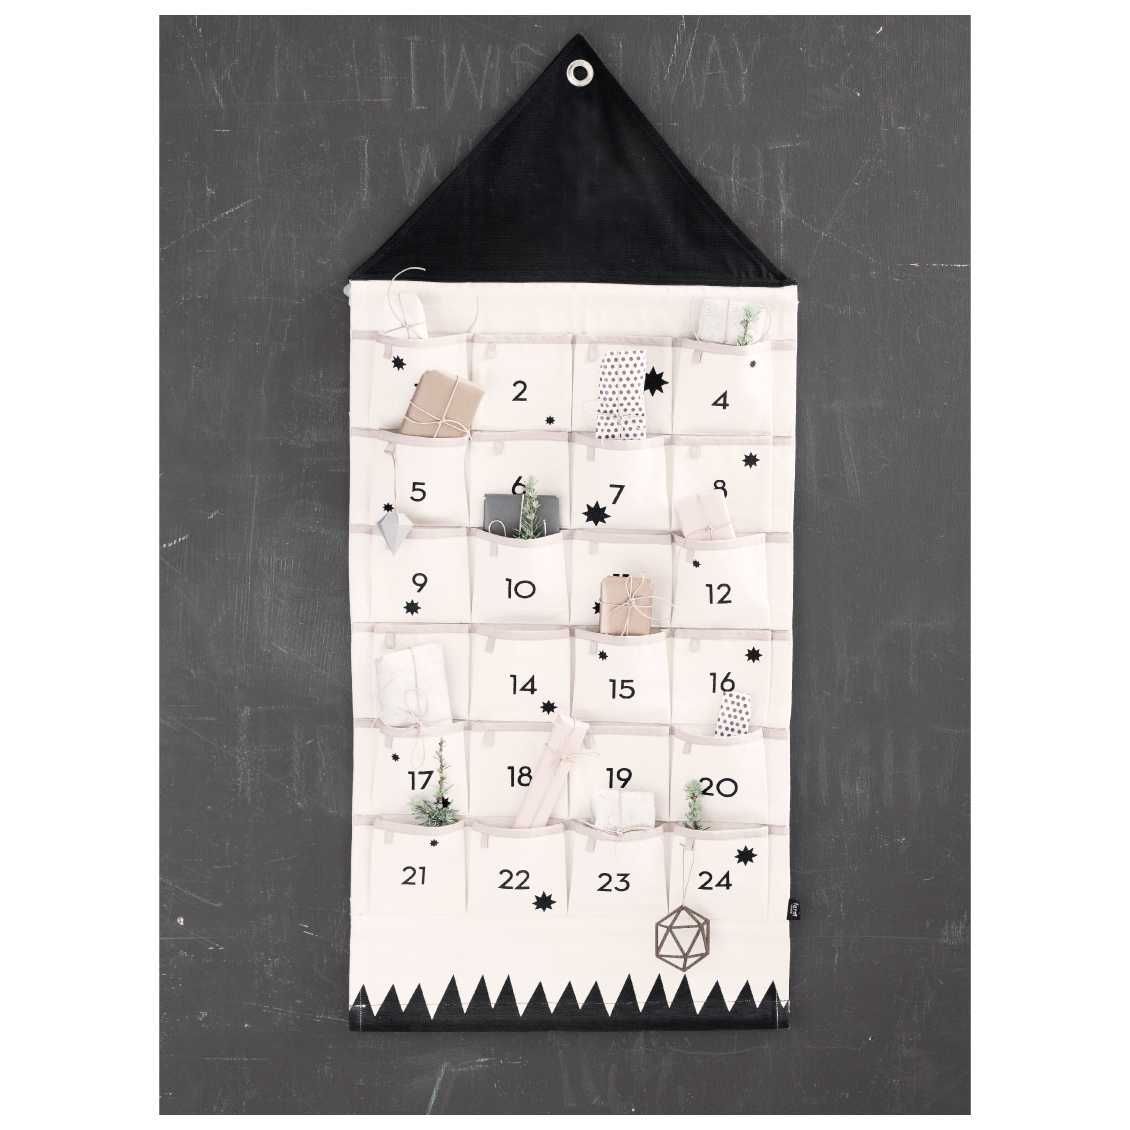 Elegant Ferm Living Adventskalender Foto Von Dan Is De #ferm #living #e #christmas